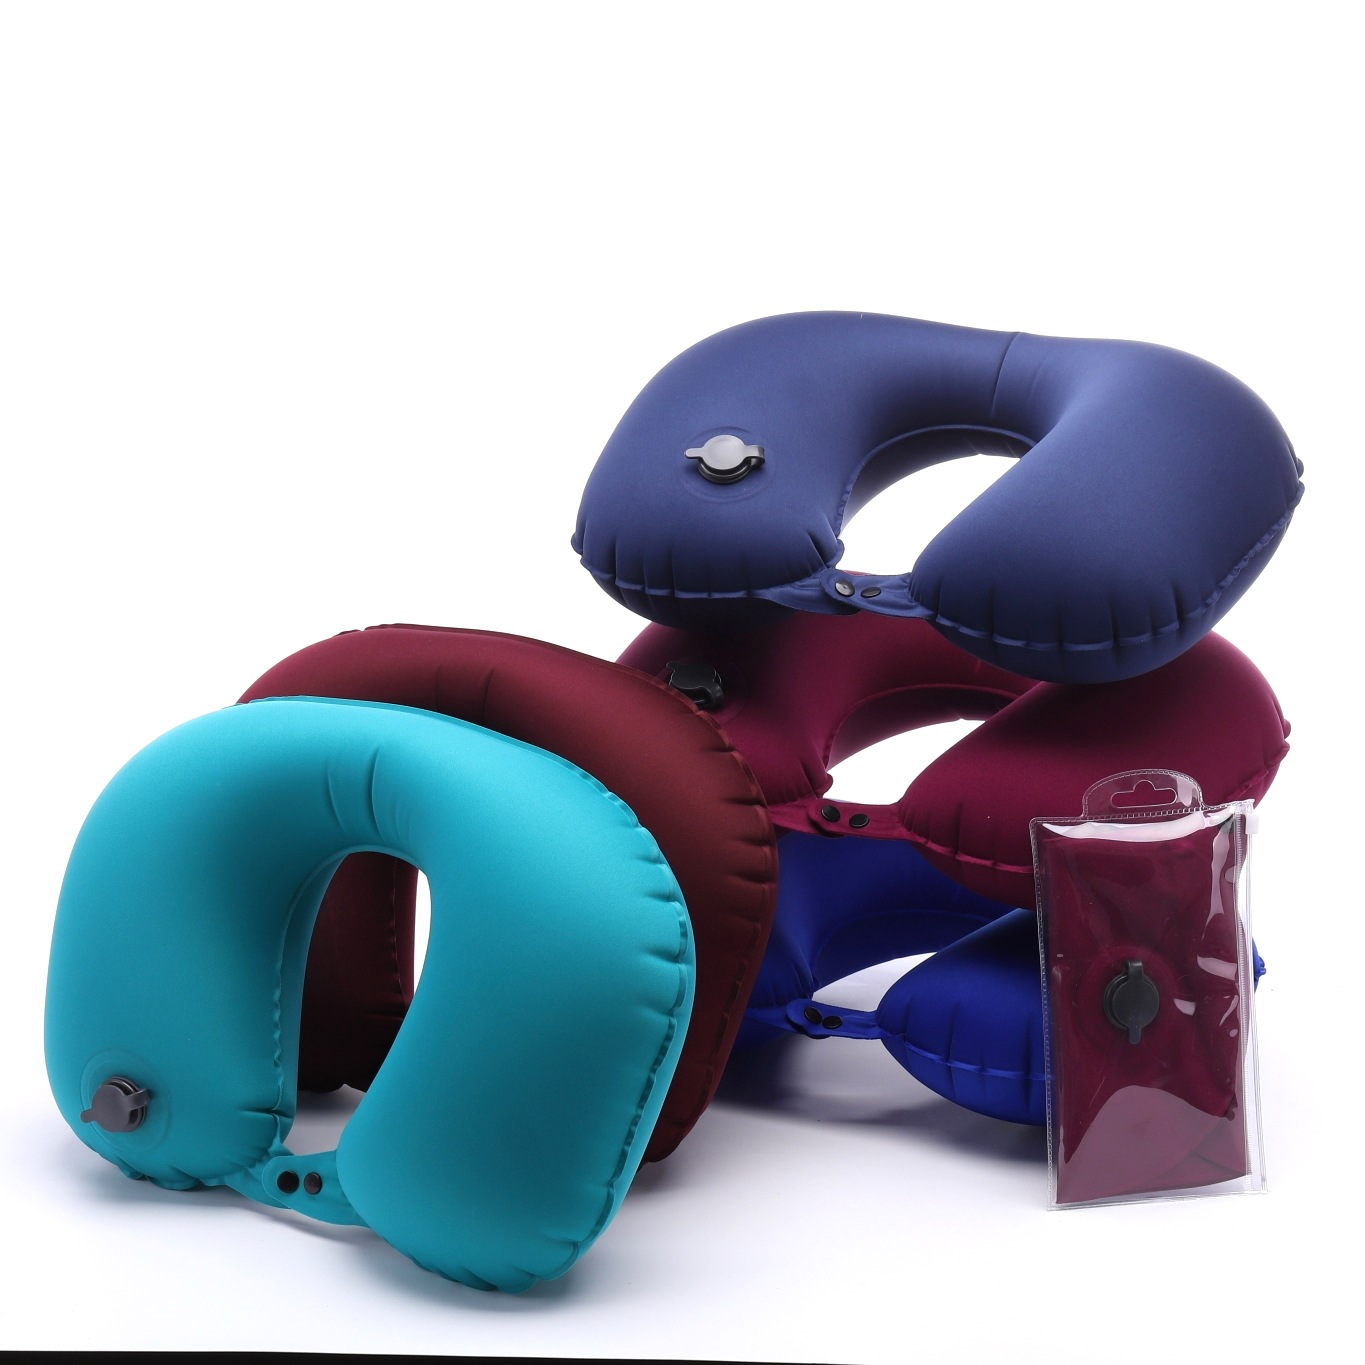 2019  Travel Inflatable Pillow, Travel Pillow,  Inflatable Neck Pillow  IP-015